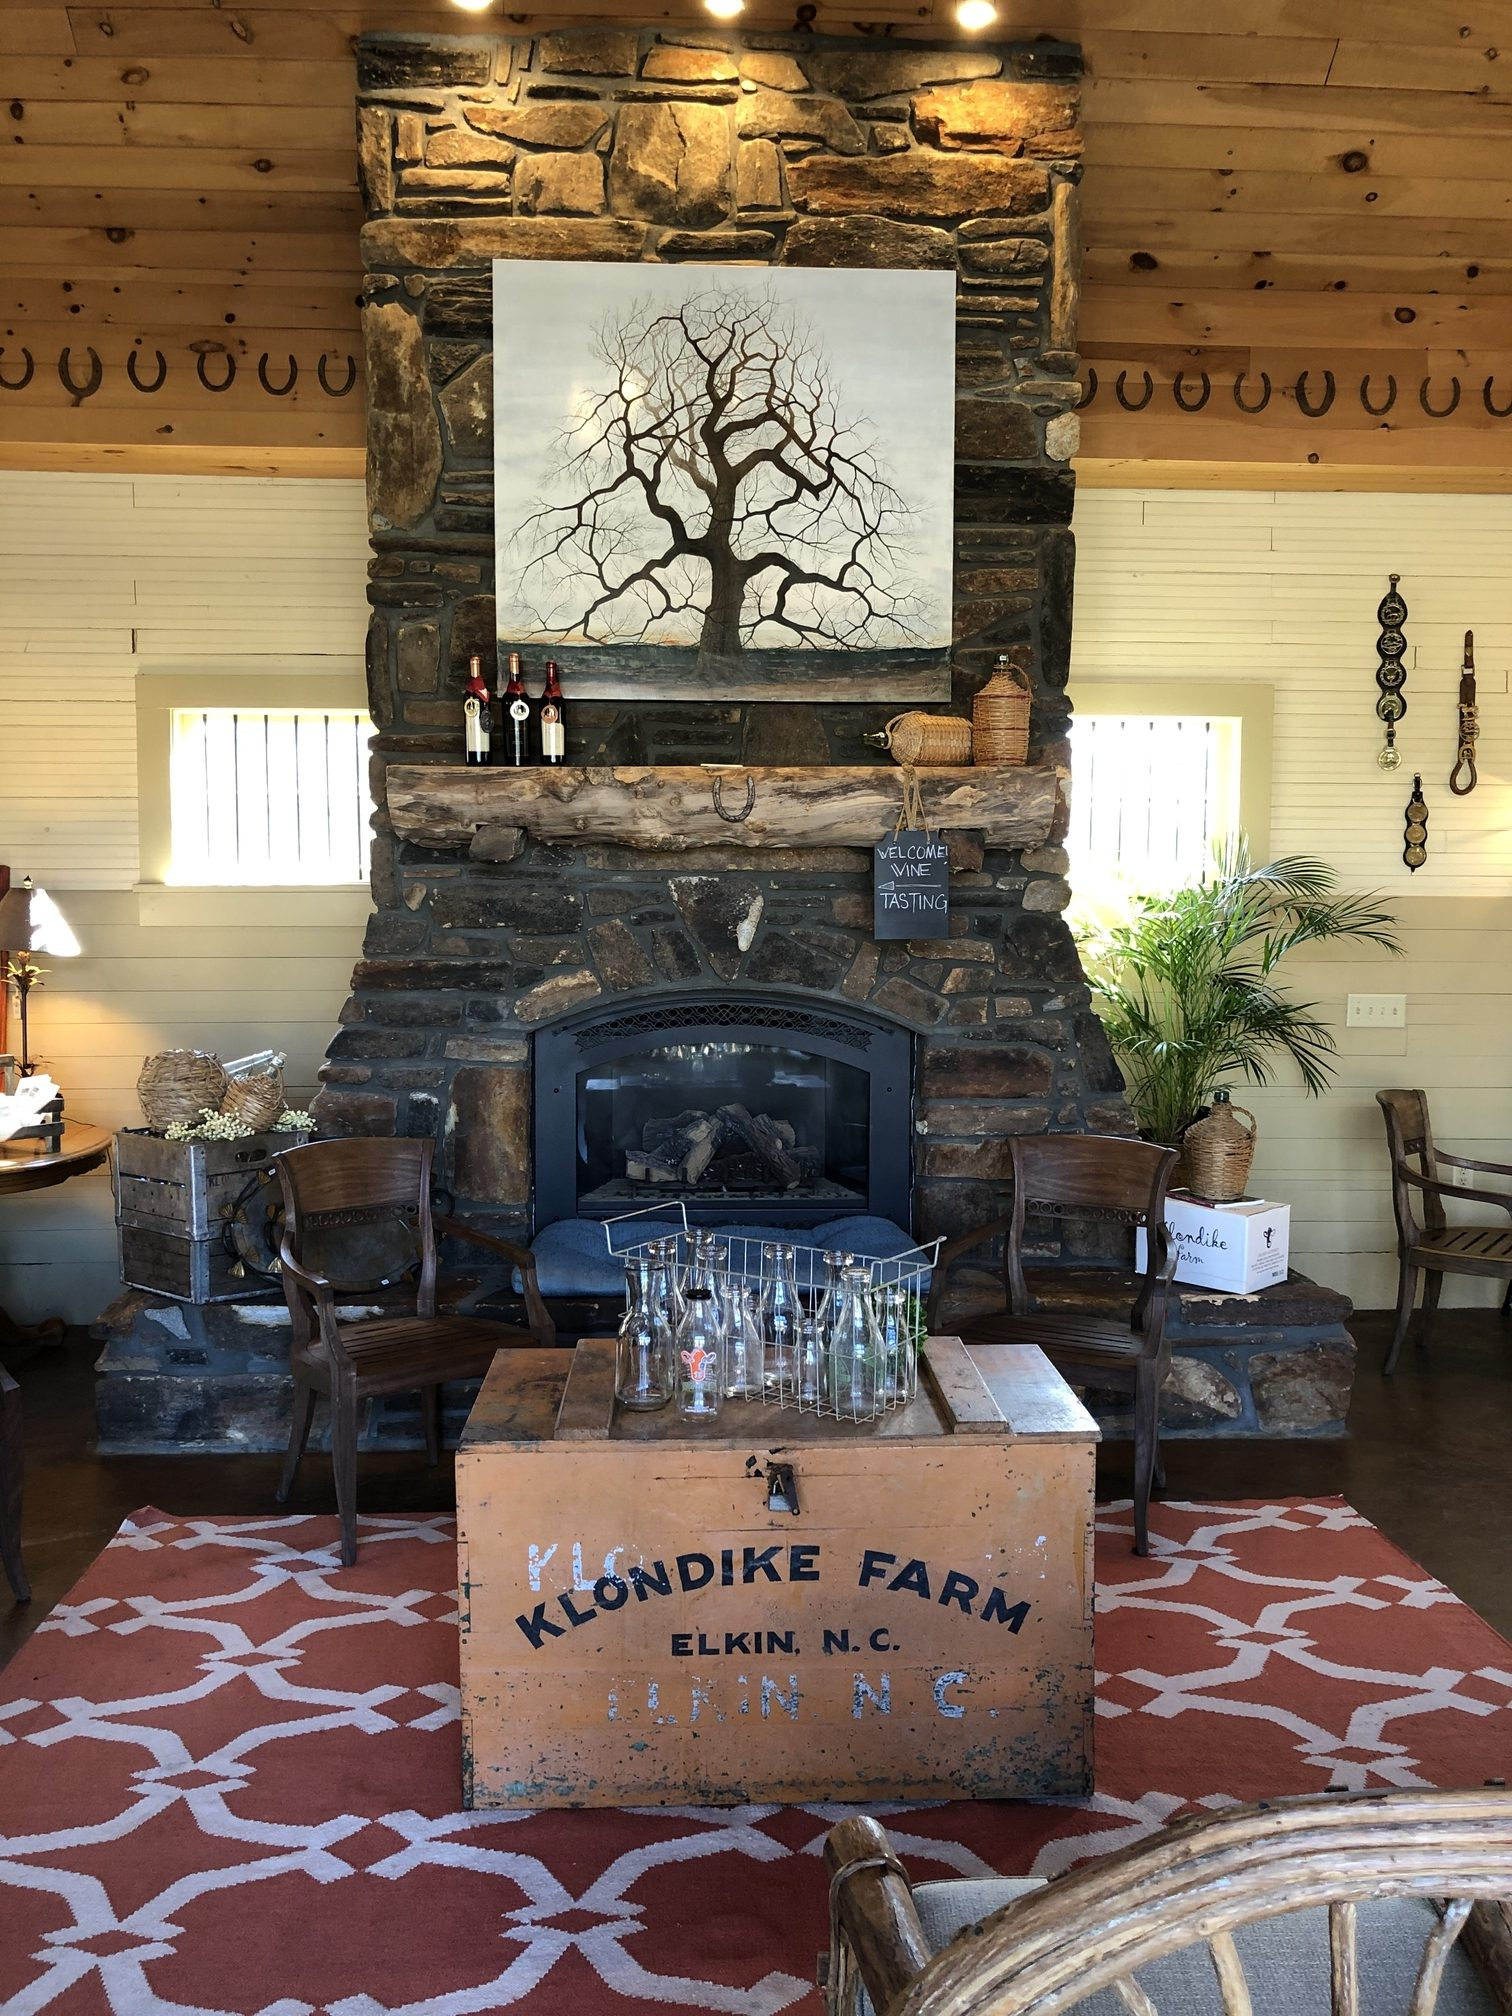 rock fireplace with rustic decor surrounding it at Grassy Creek Vineyard - yadkin valley wineries